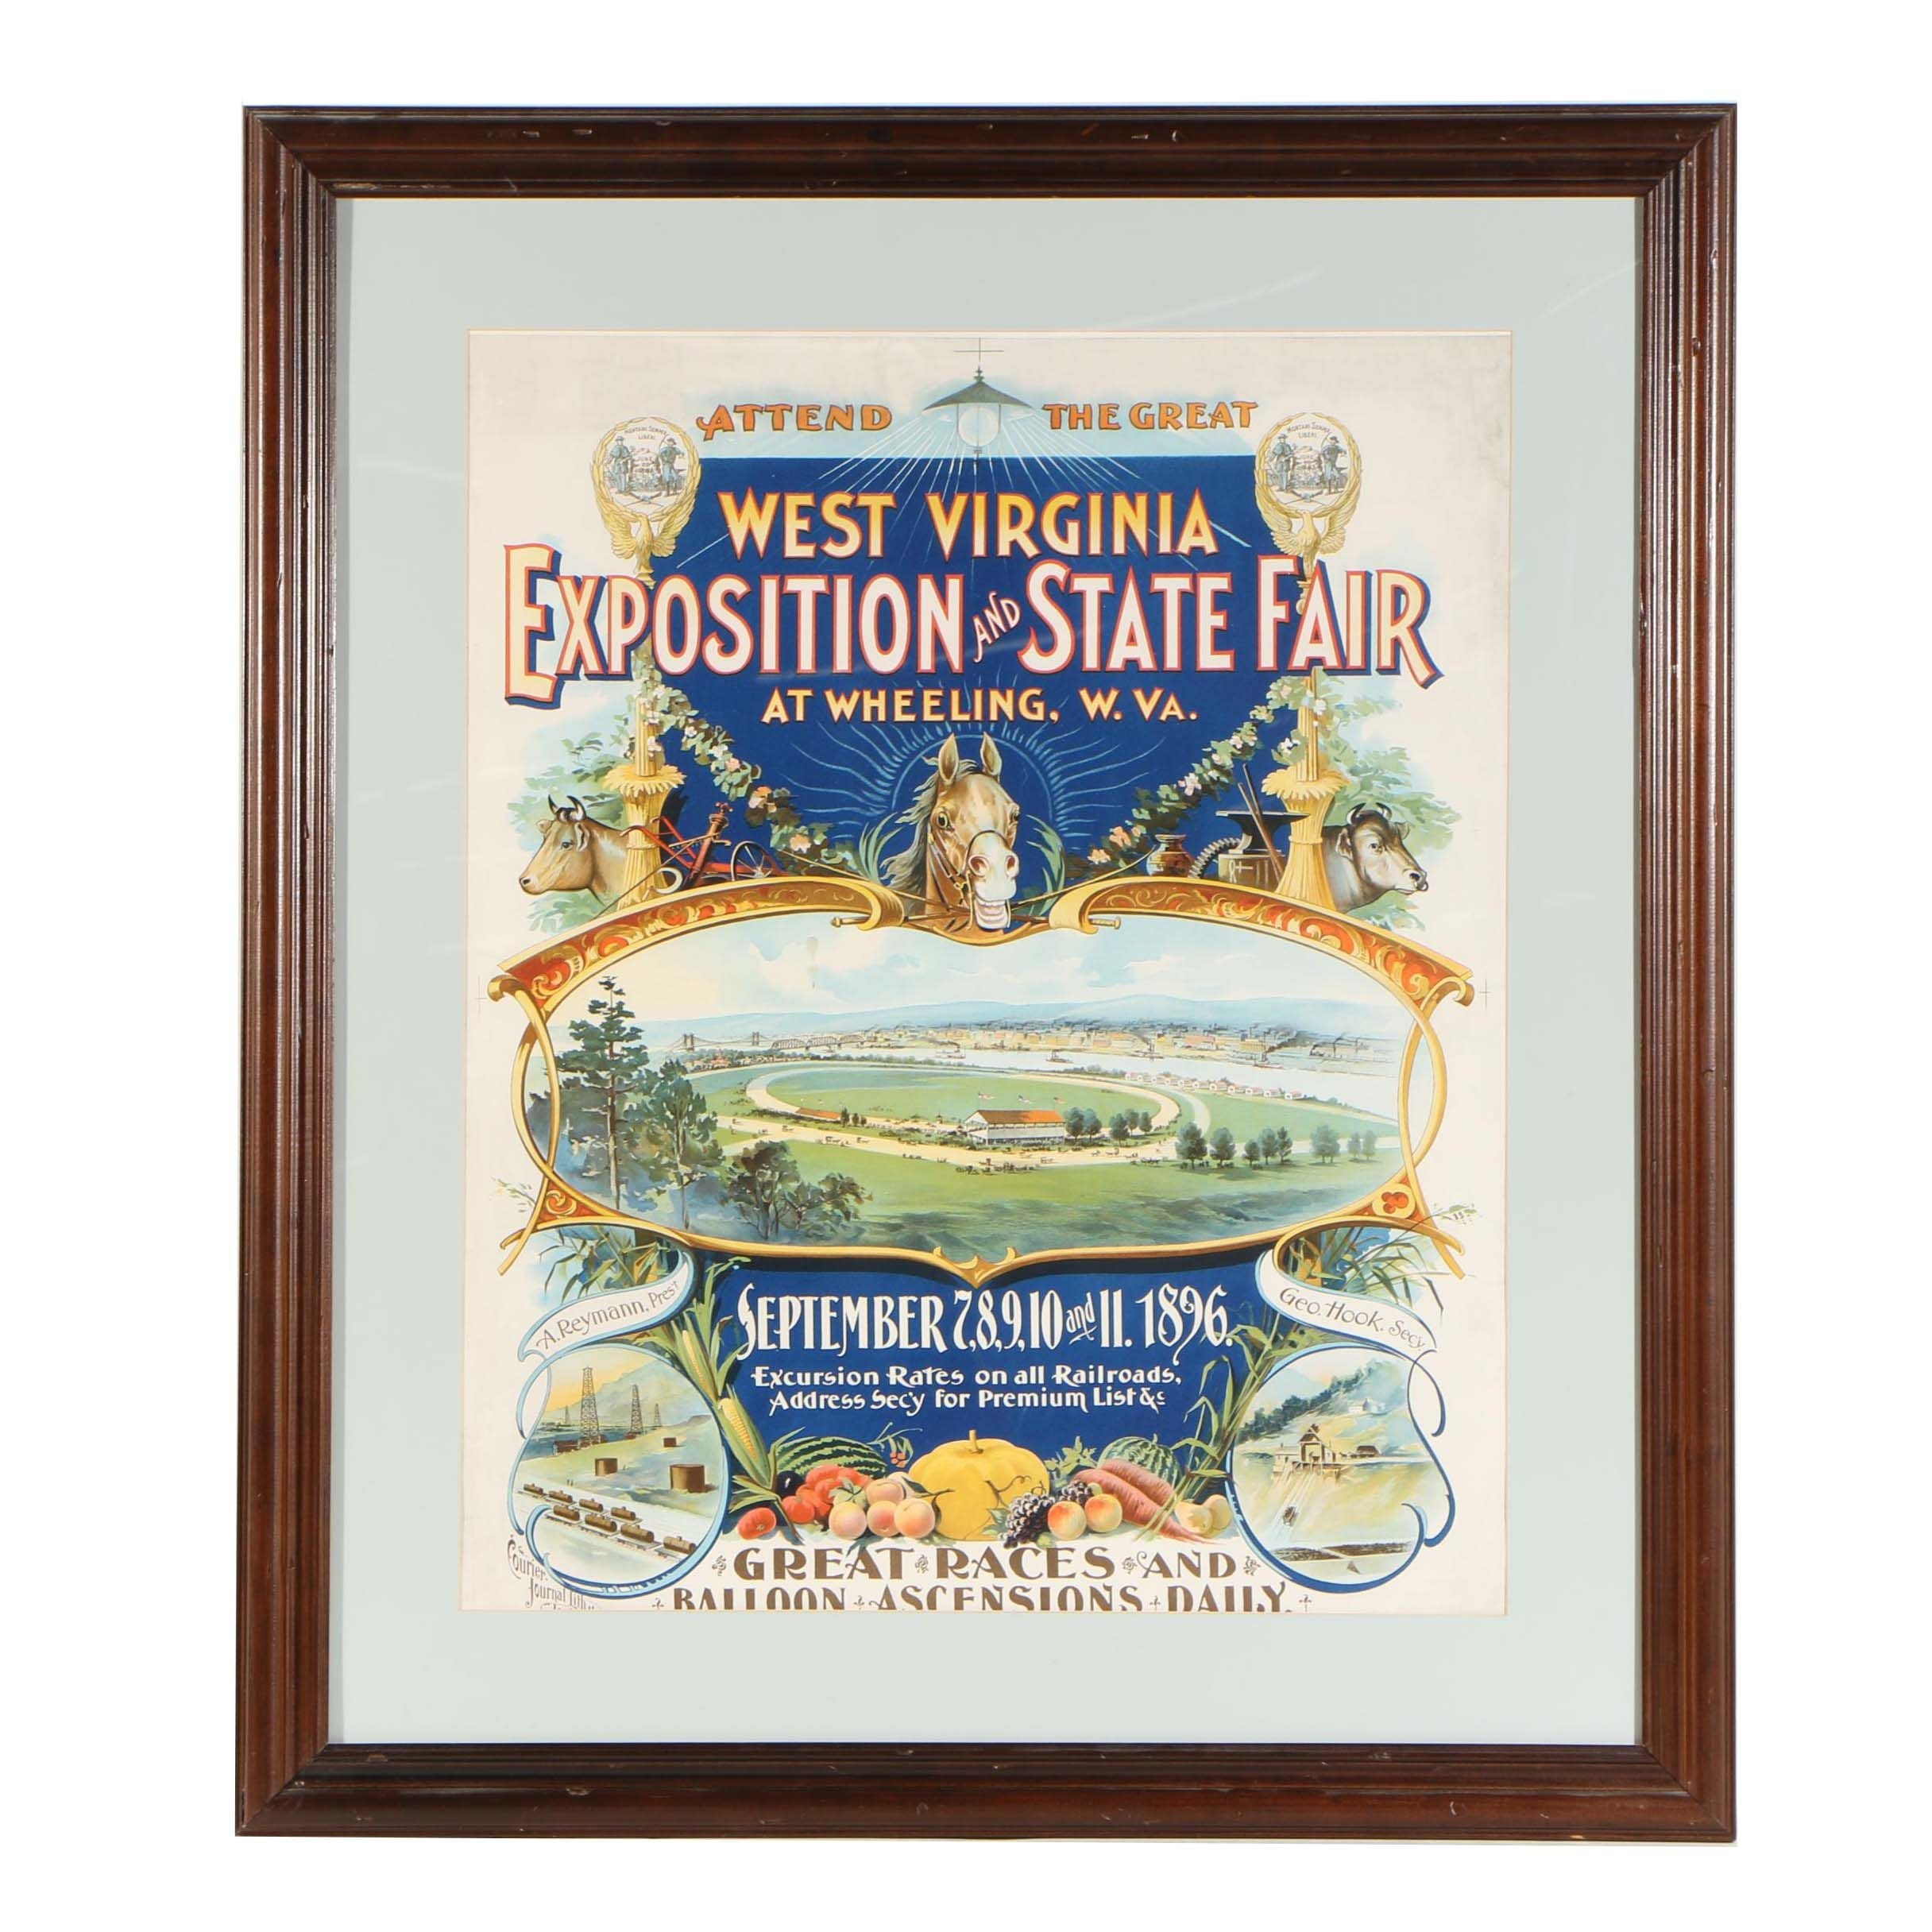 1896 West Virginia Exposition and State Fair Poster